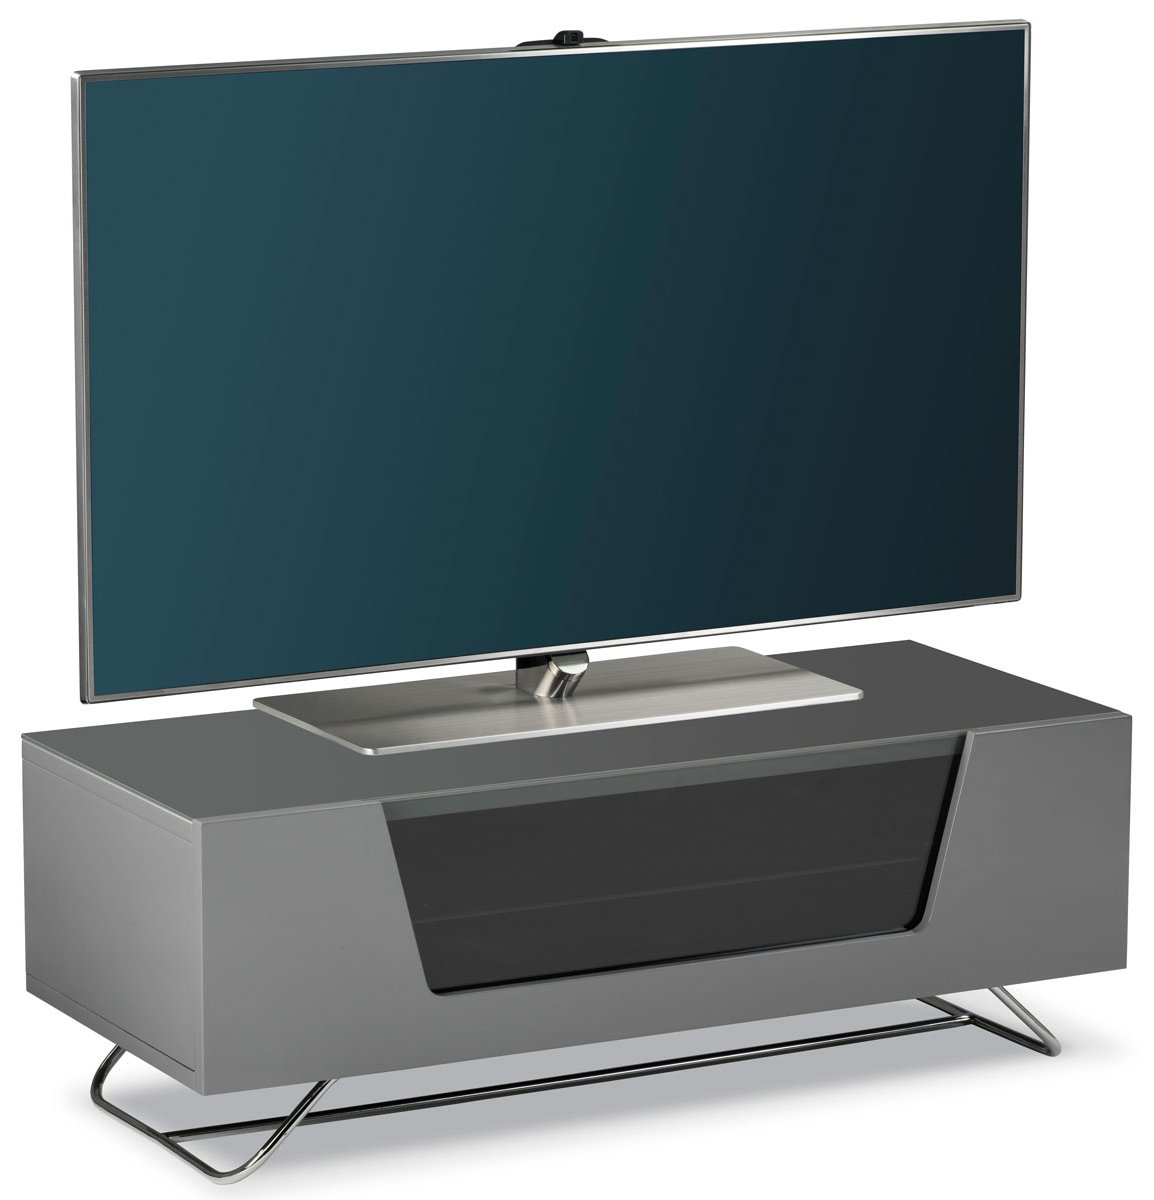 Alphason Cro2 1000cb Gry Displaymodel Clearance # Table Pour La Television